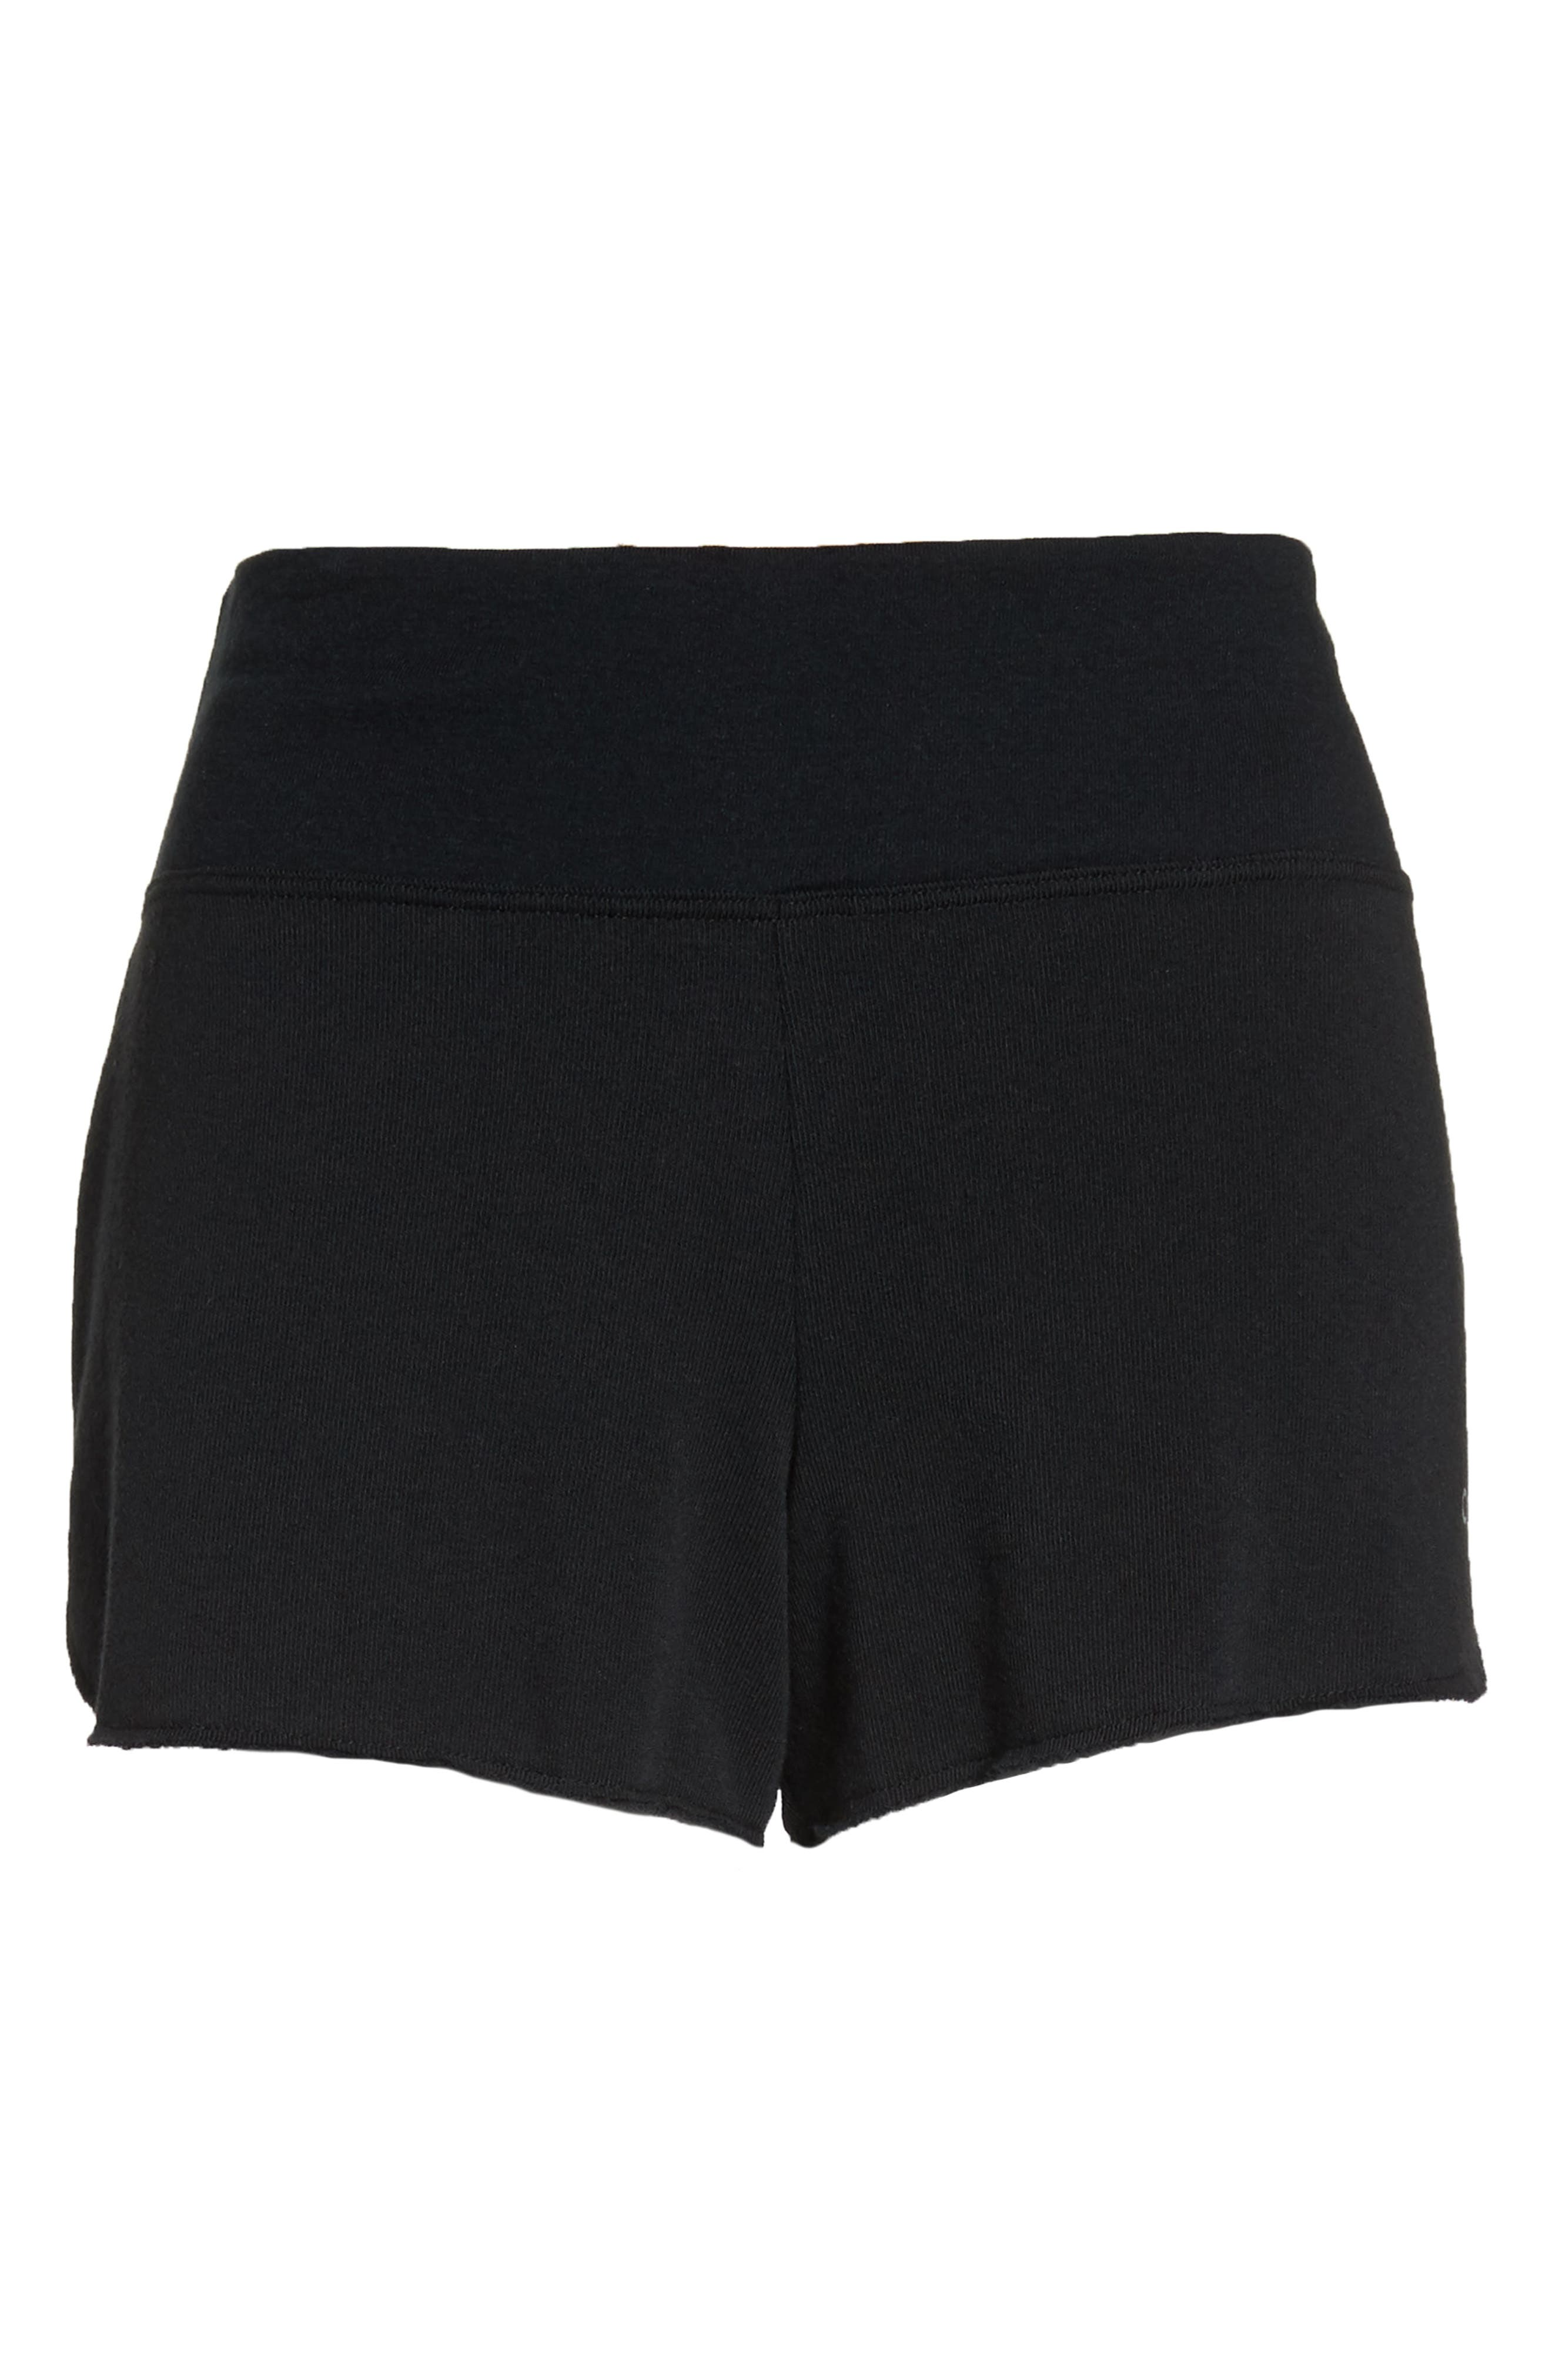 Boarder Shorts,                             Alternate thumbnail 7, color,                             001